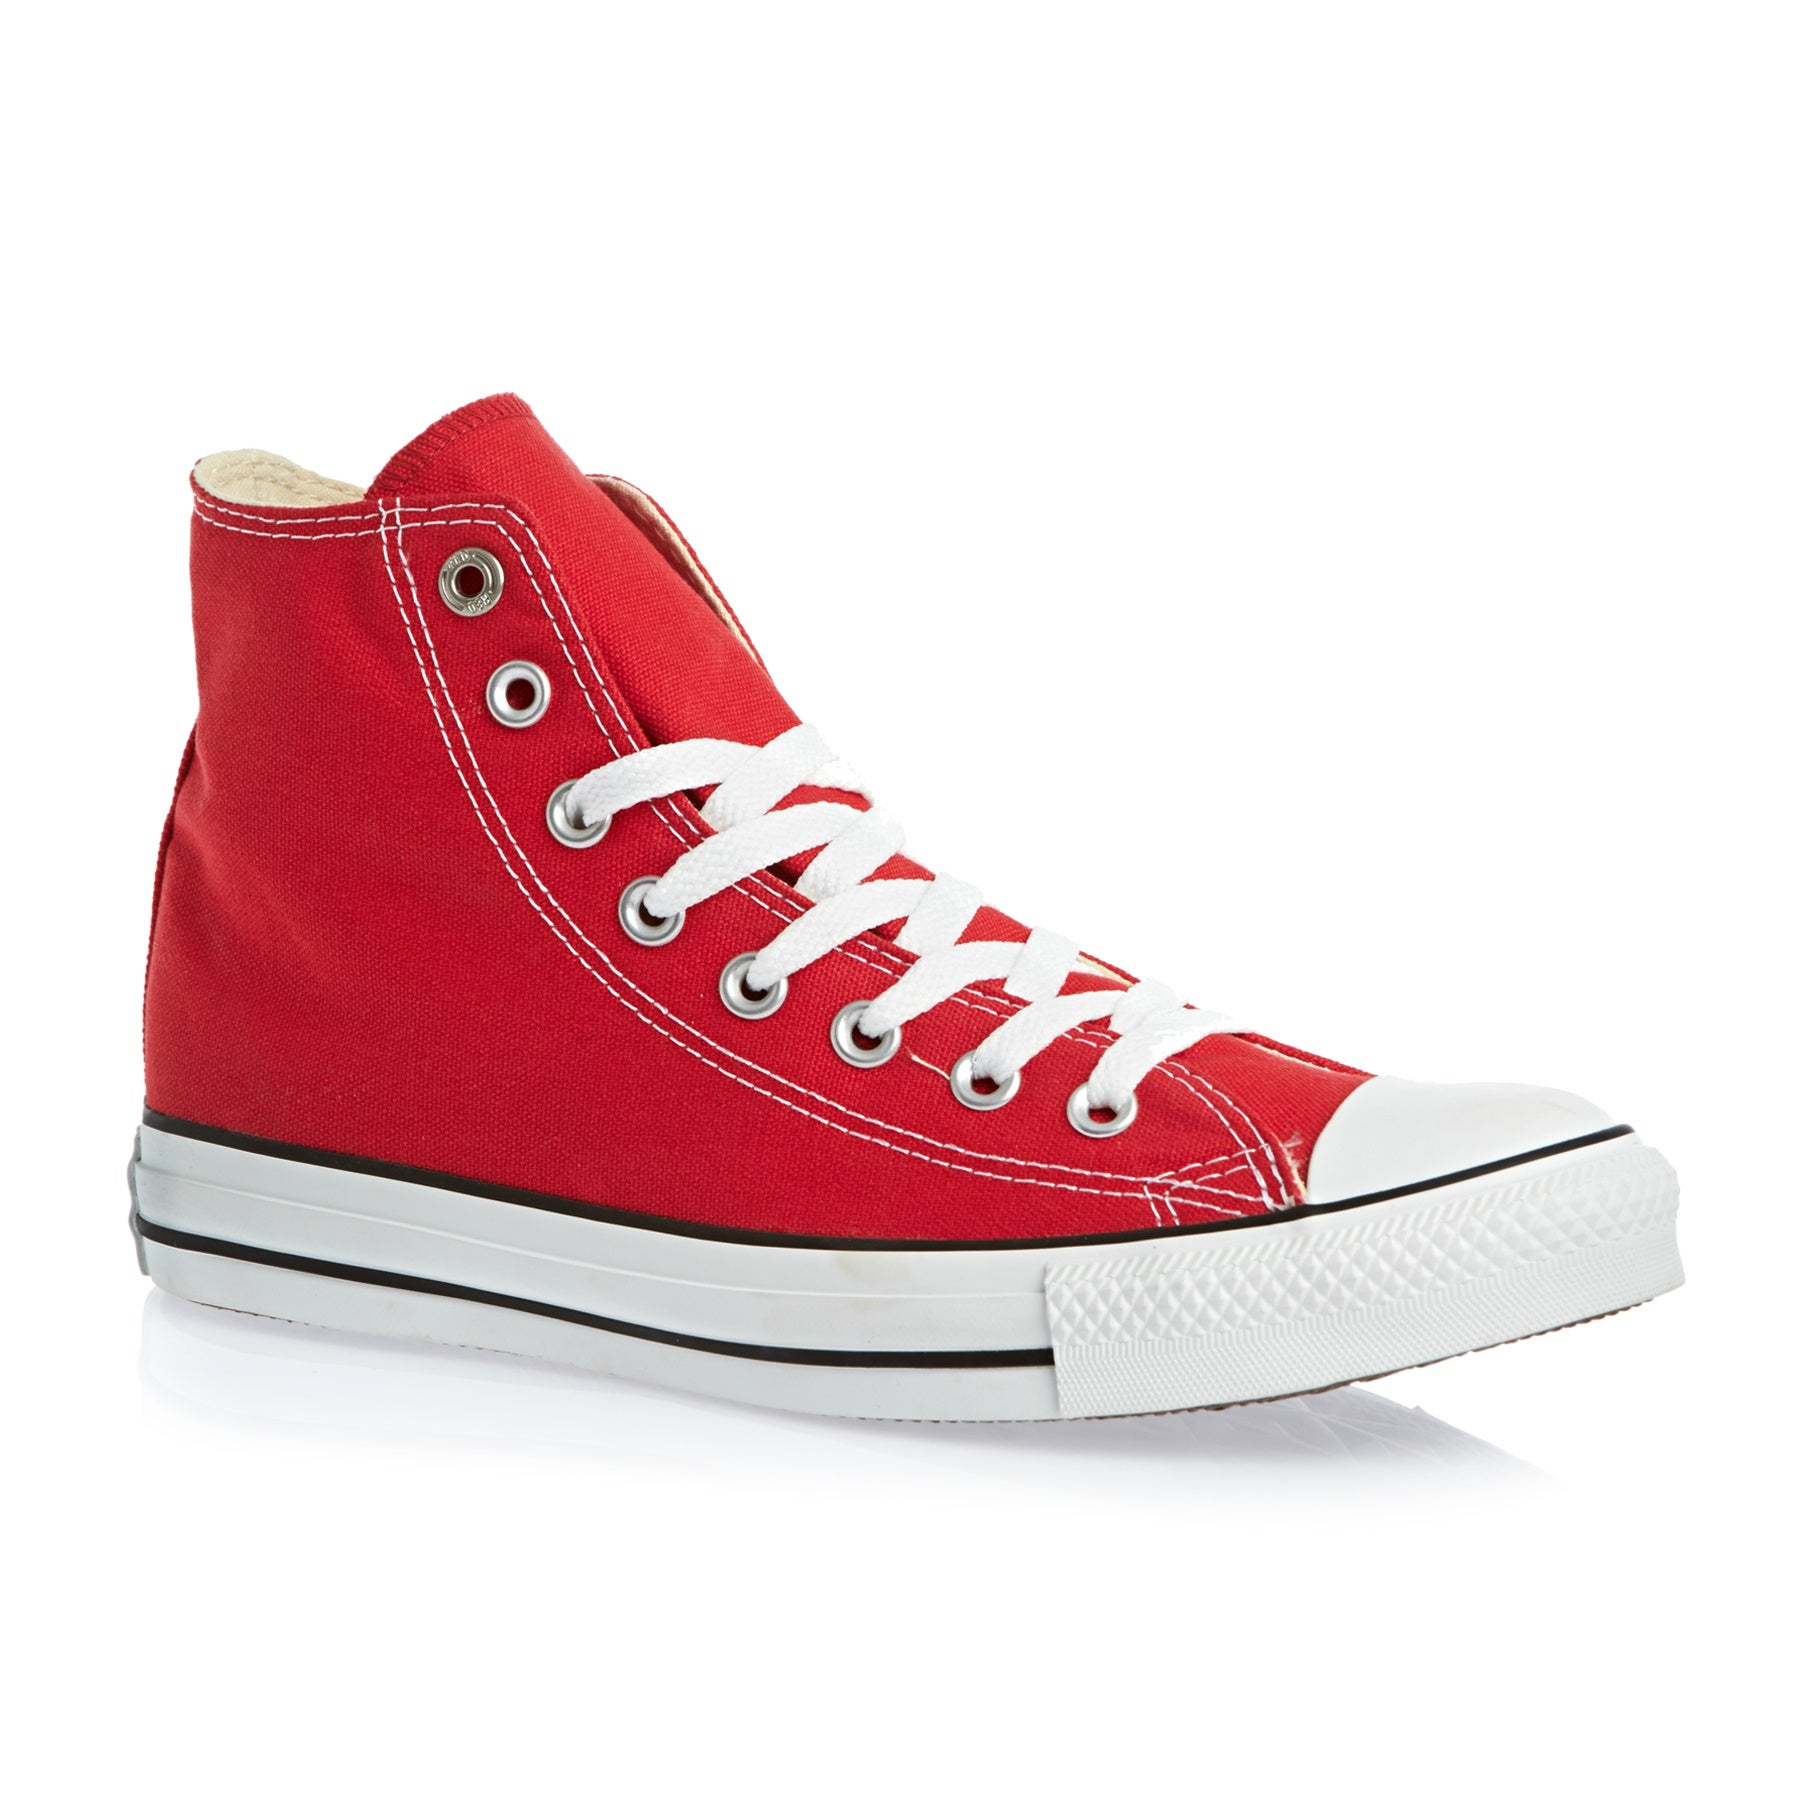 Converse Chuck Taylor All Stars Hi Shoes - Red